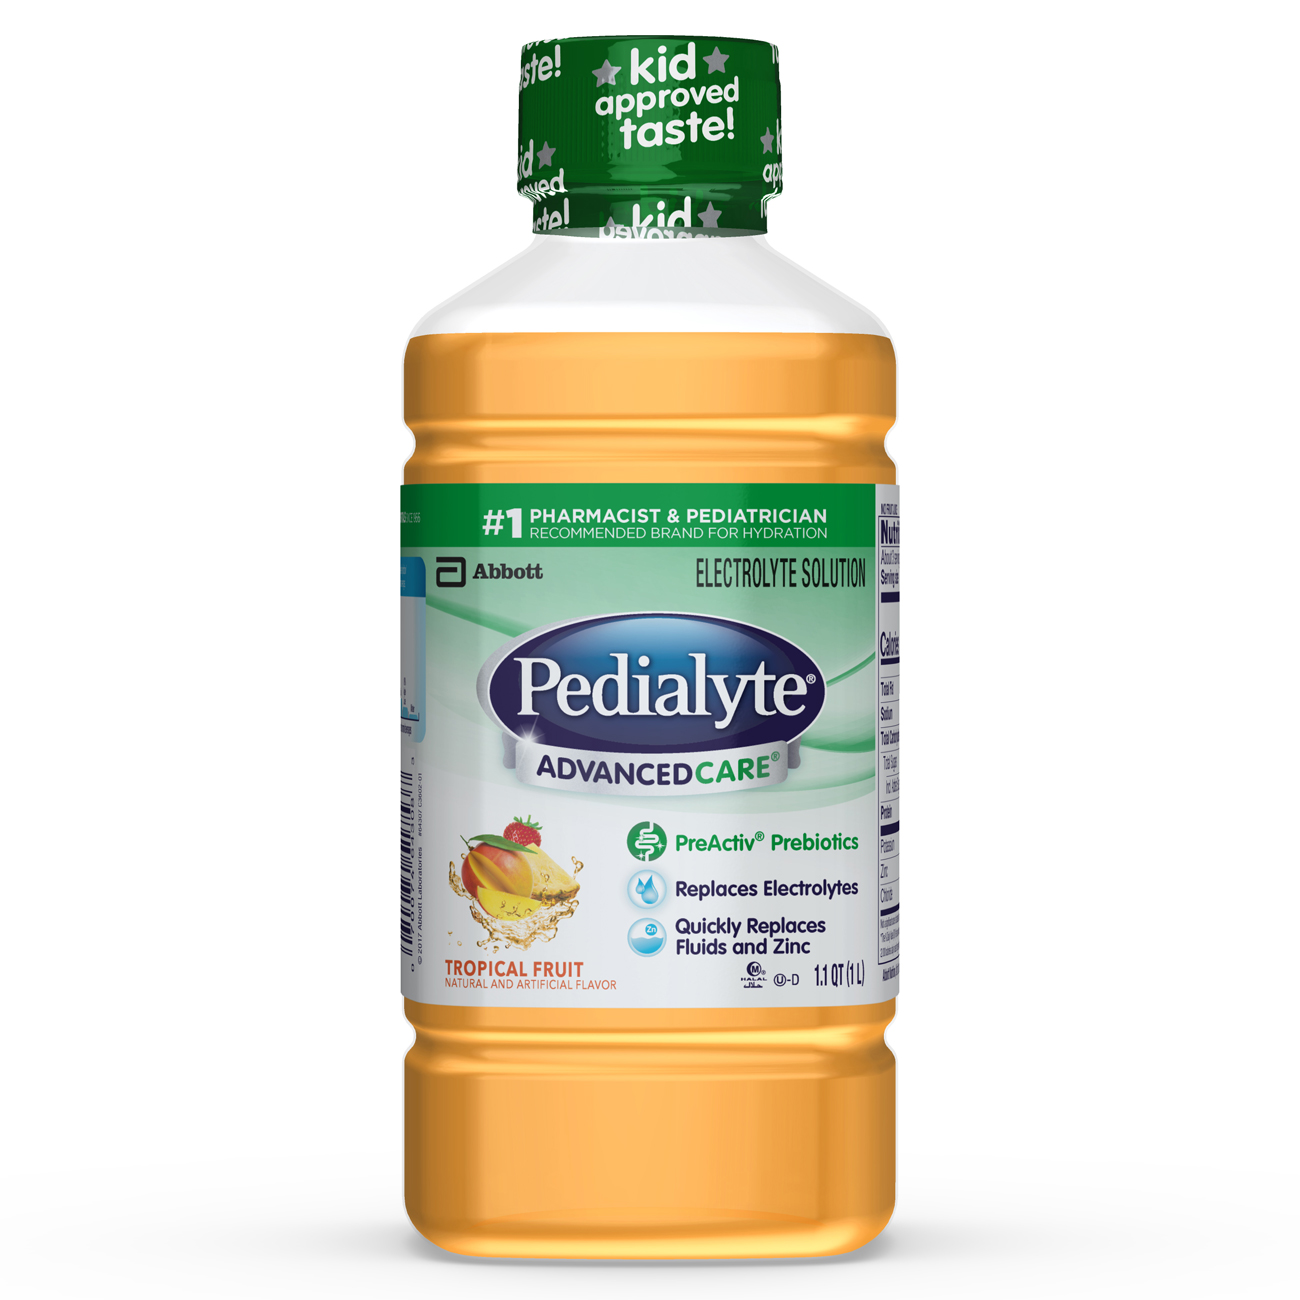 Pedialyte AdvancedCare Electrolyte Solution with PreActiv Prebiotics, Hydration Drink, Tropical Fruit, 1 Liter, 4 Count